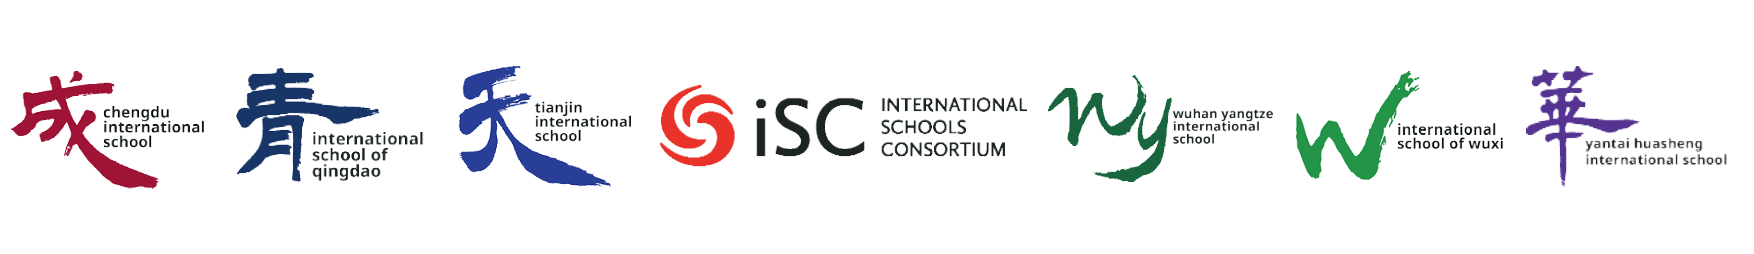 International Schools Consortium